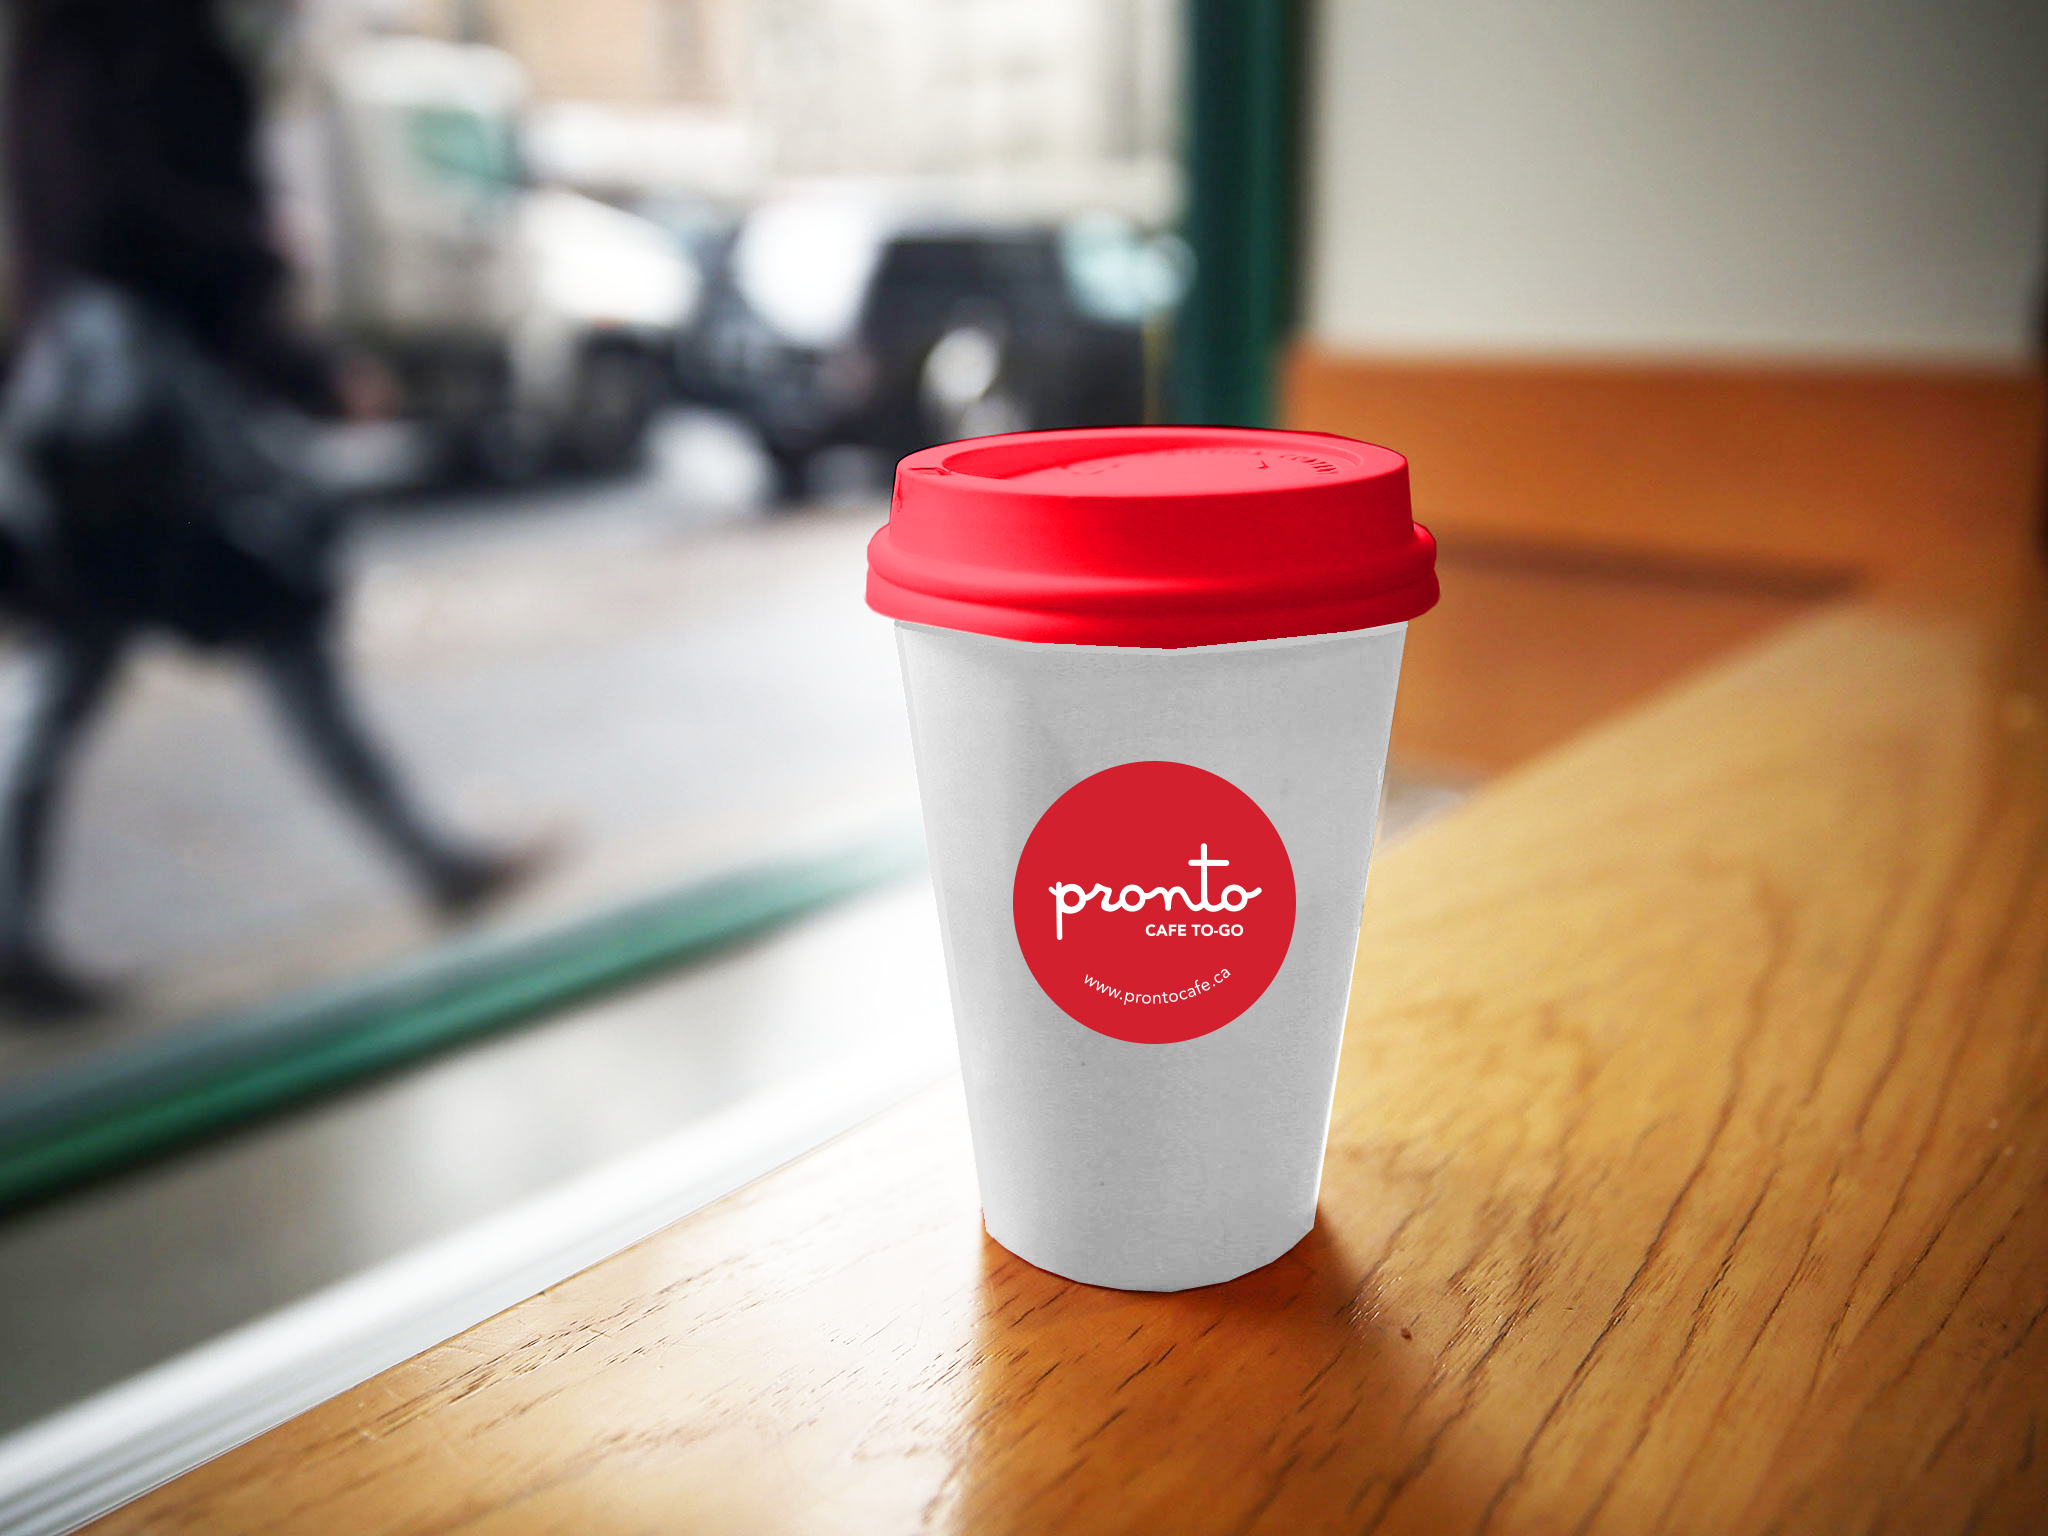 Lavazza Coffee Cup at Pronto Cafe